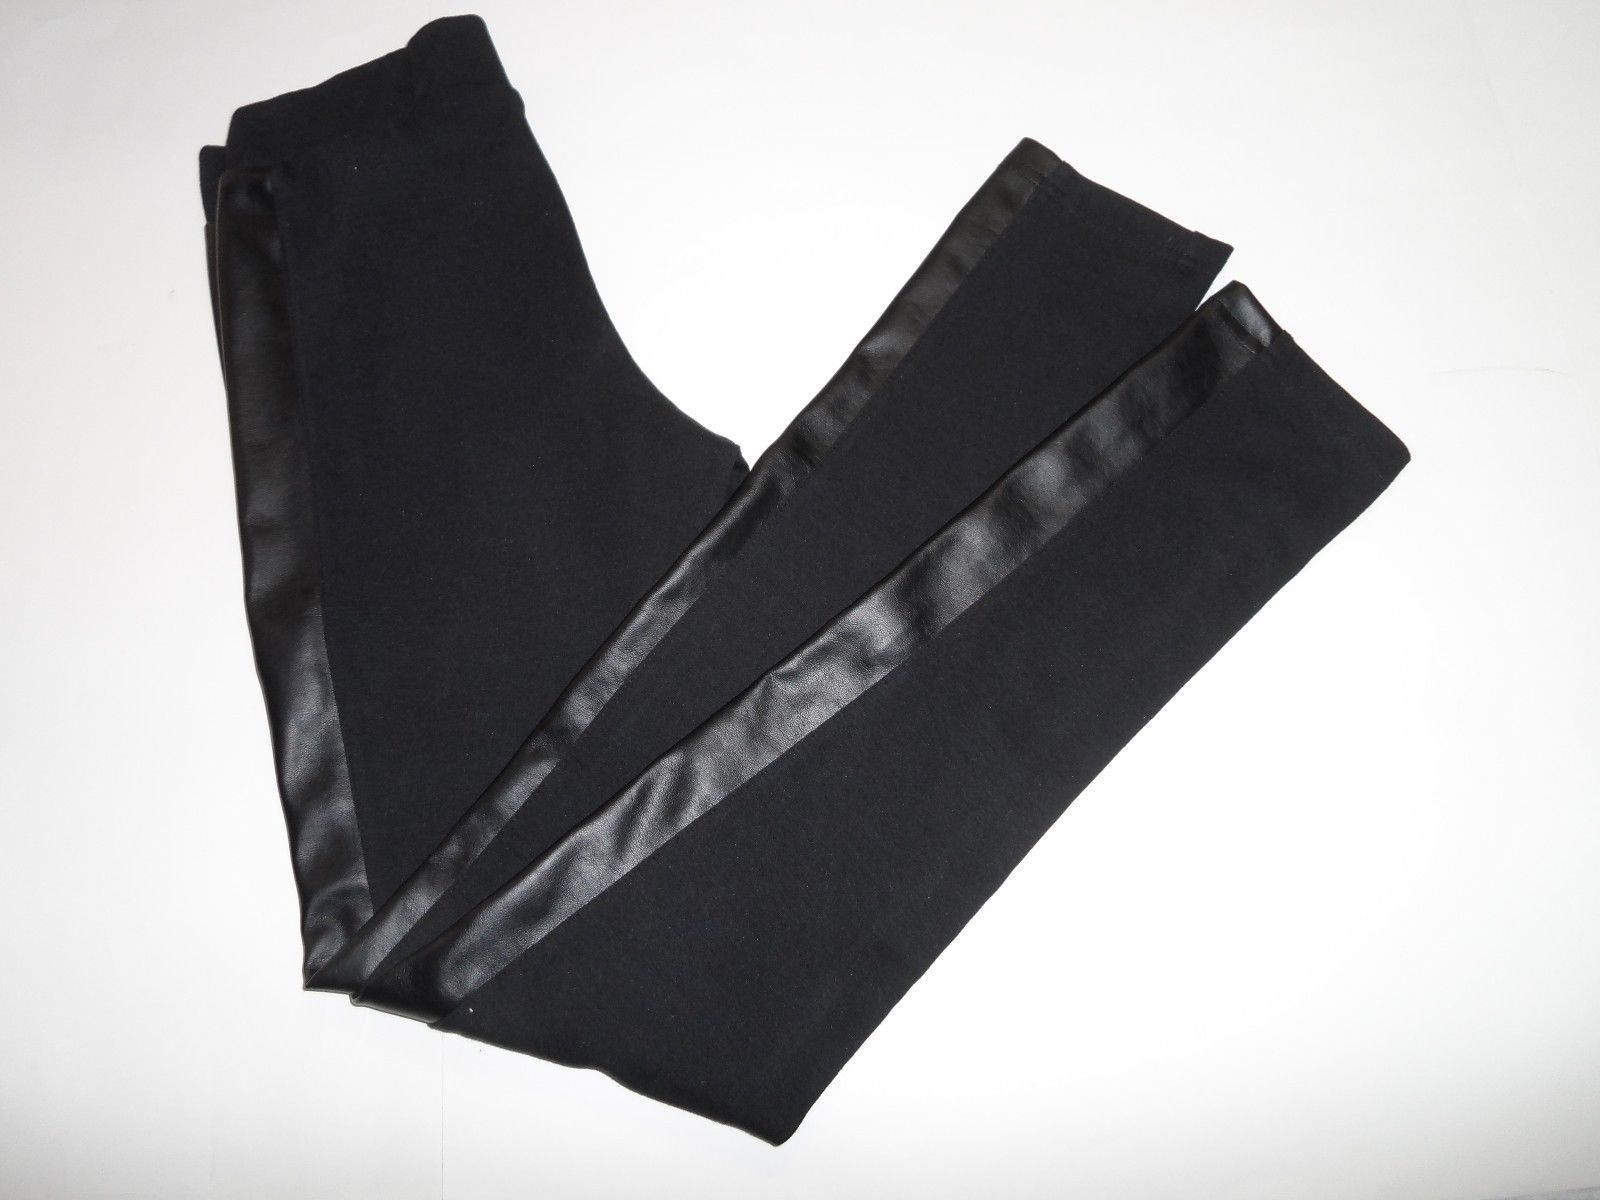 Nordstrom RID Faux Leather Panelled Legging Black Size S-$44 image 3